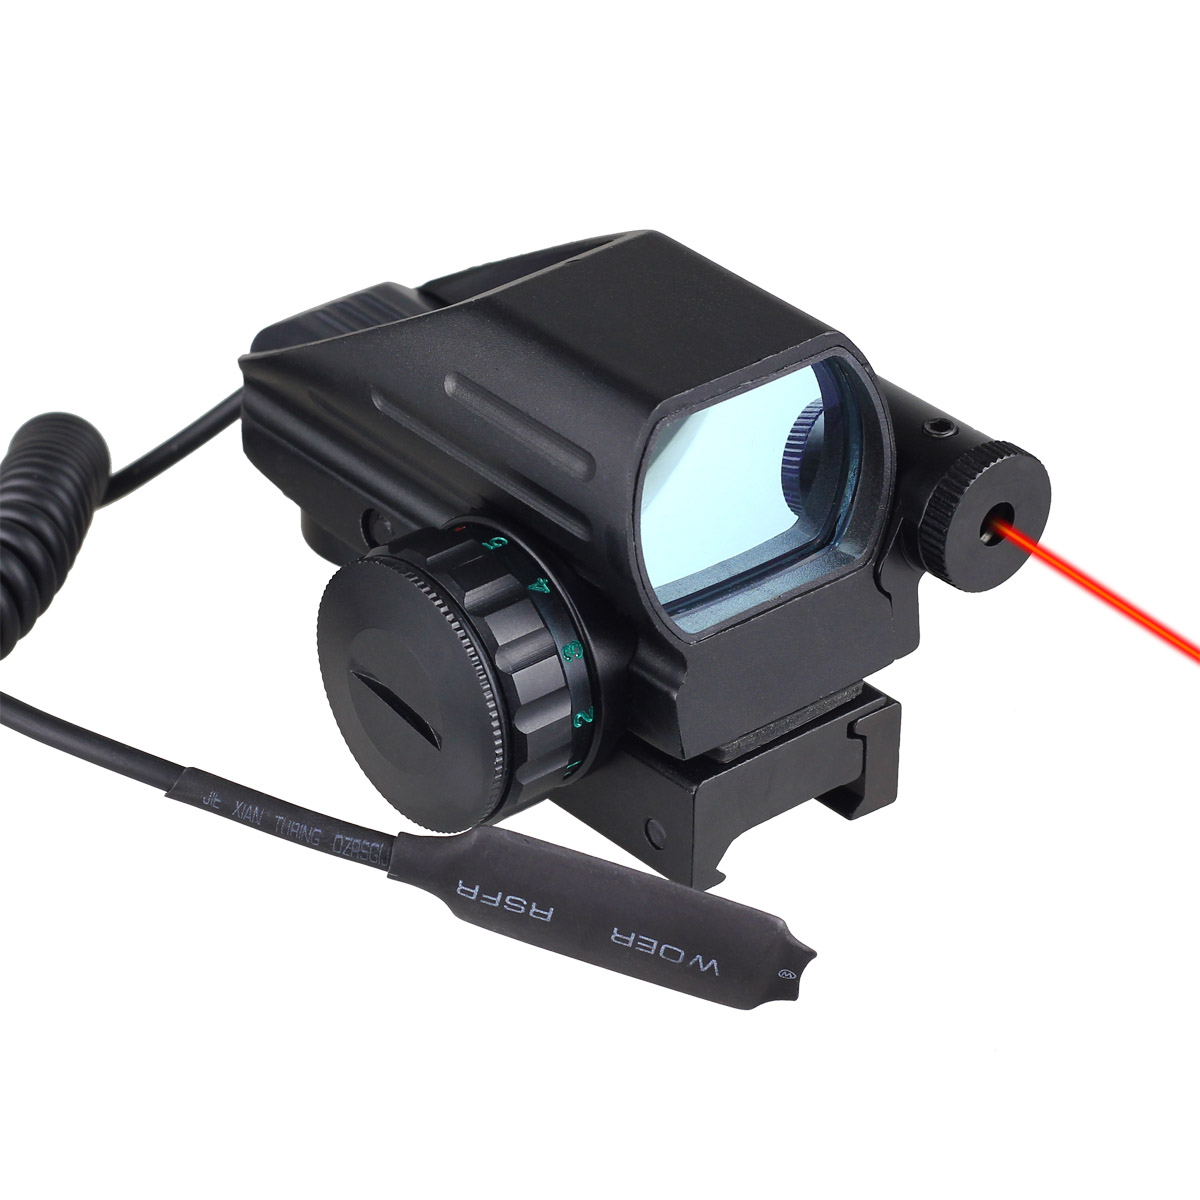 Holographic Laser Sight Scope Reflex 4 Red Green Dot Reticle Picatinny Rail 20mm for AR Rifle 12ga Shotgun Airsoft Hunting<br>